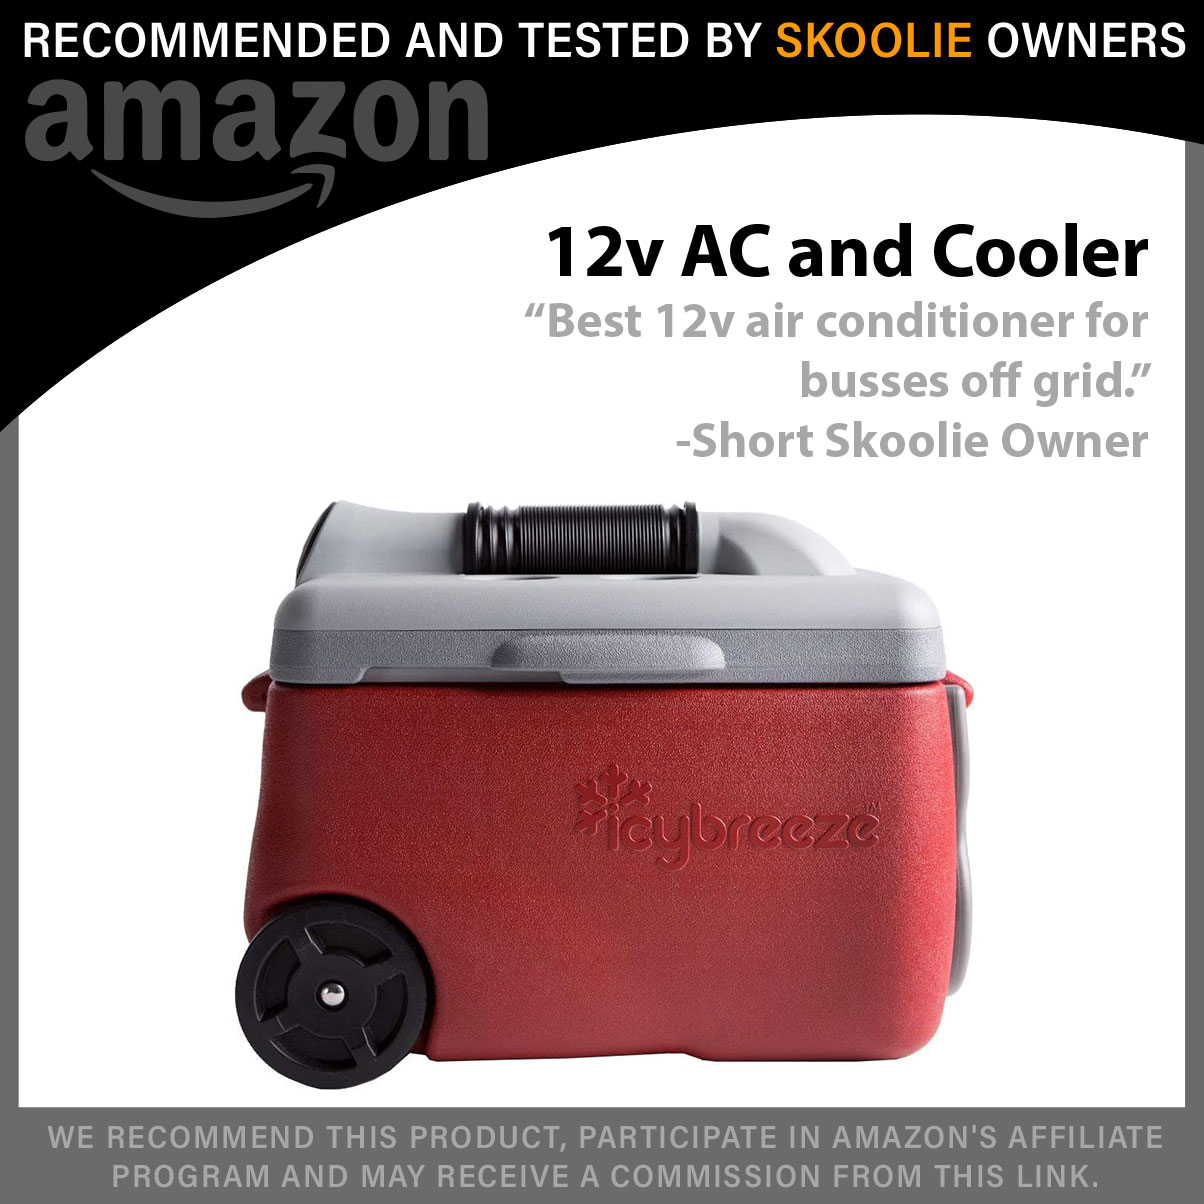 Icy Breeze 12v Cooler and Air Conditioner